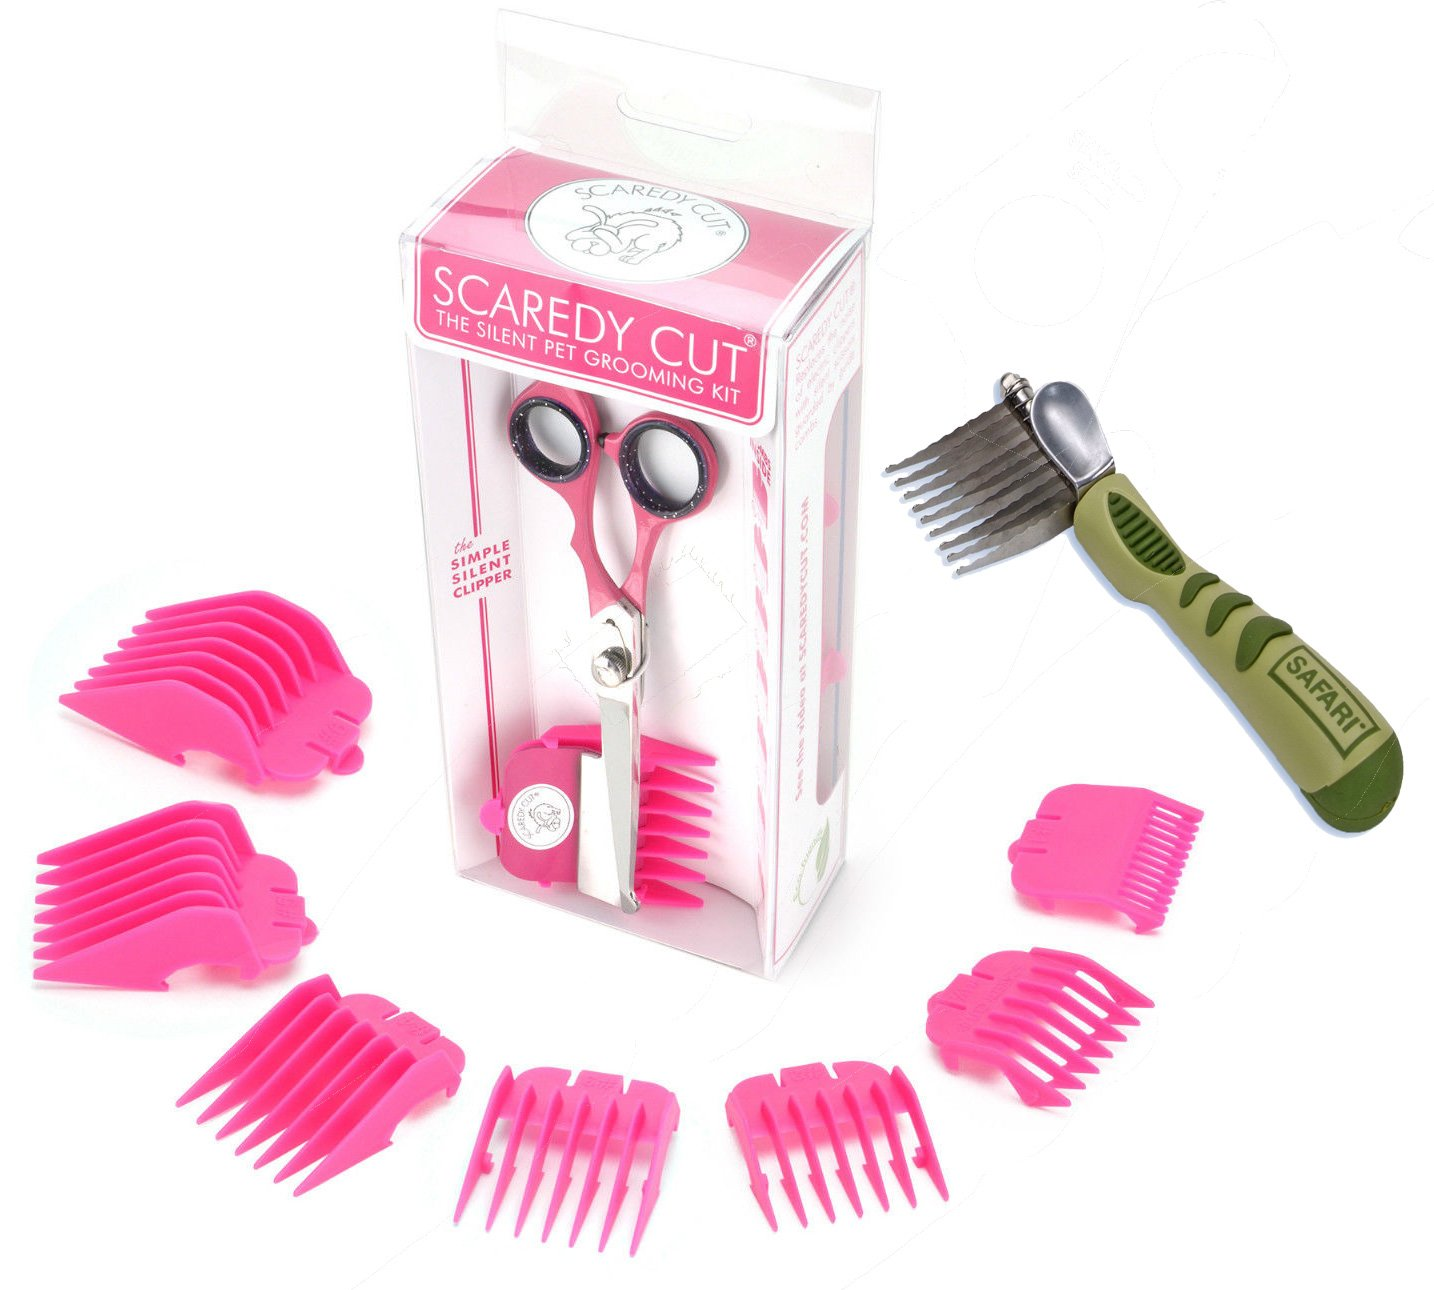 Scaredy Cut Silent Clipper, PINK, with Safari De-Matting Comb